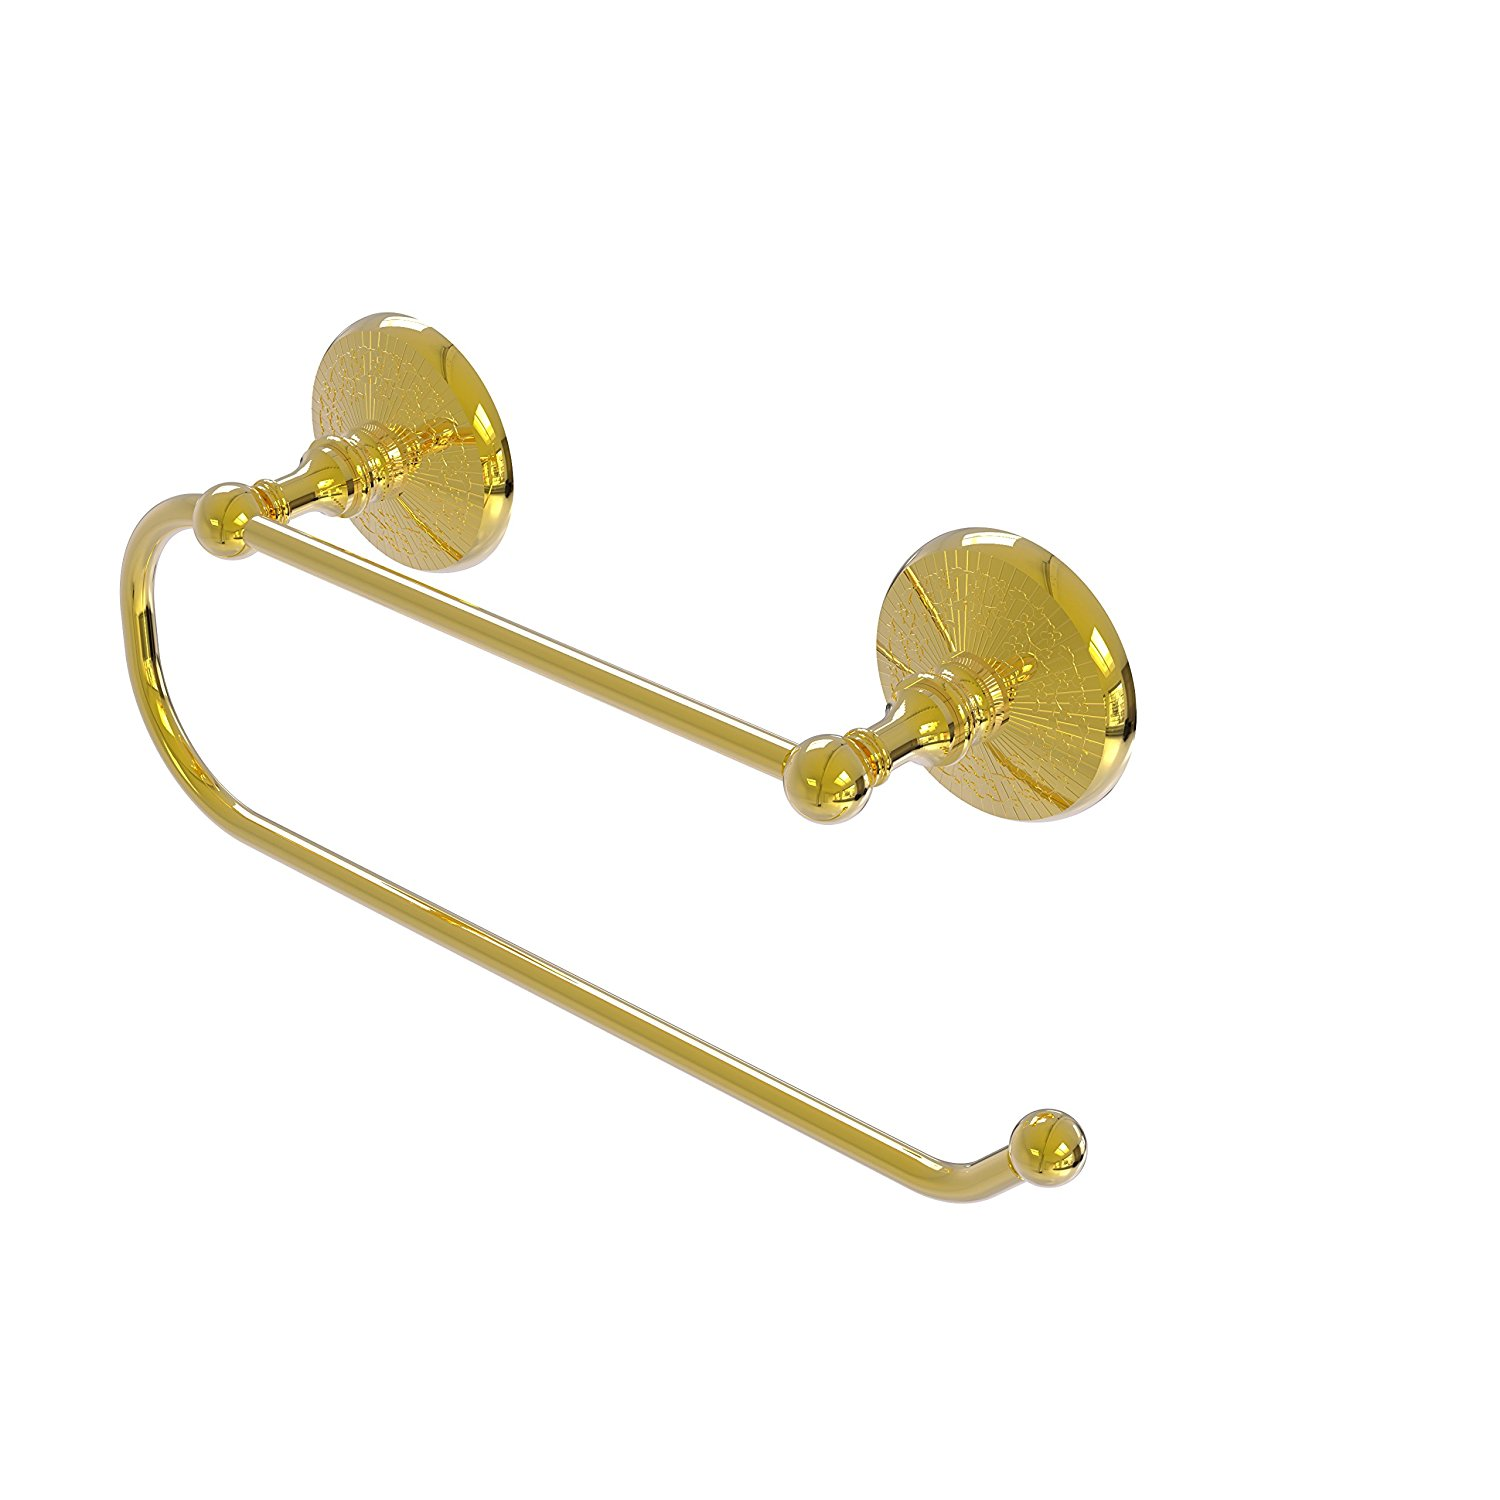 Allied Brass Prestige Monte Carlo Wall Mounted Paper Towel Holder PMC-25EW - Unlacquered Brass